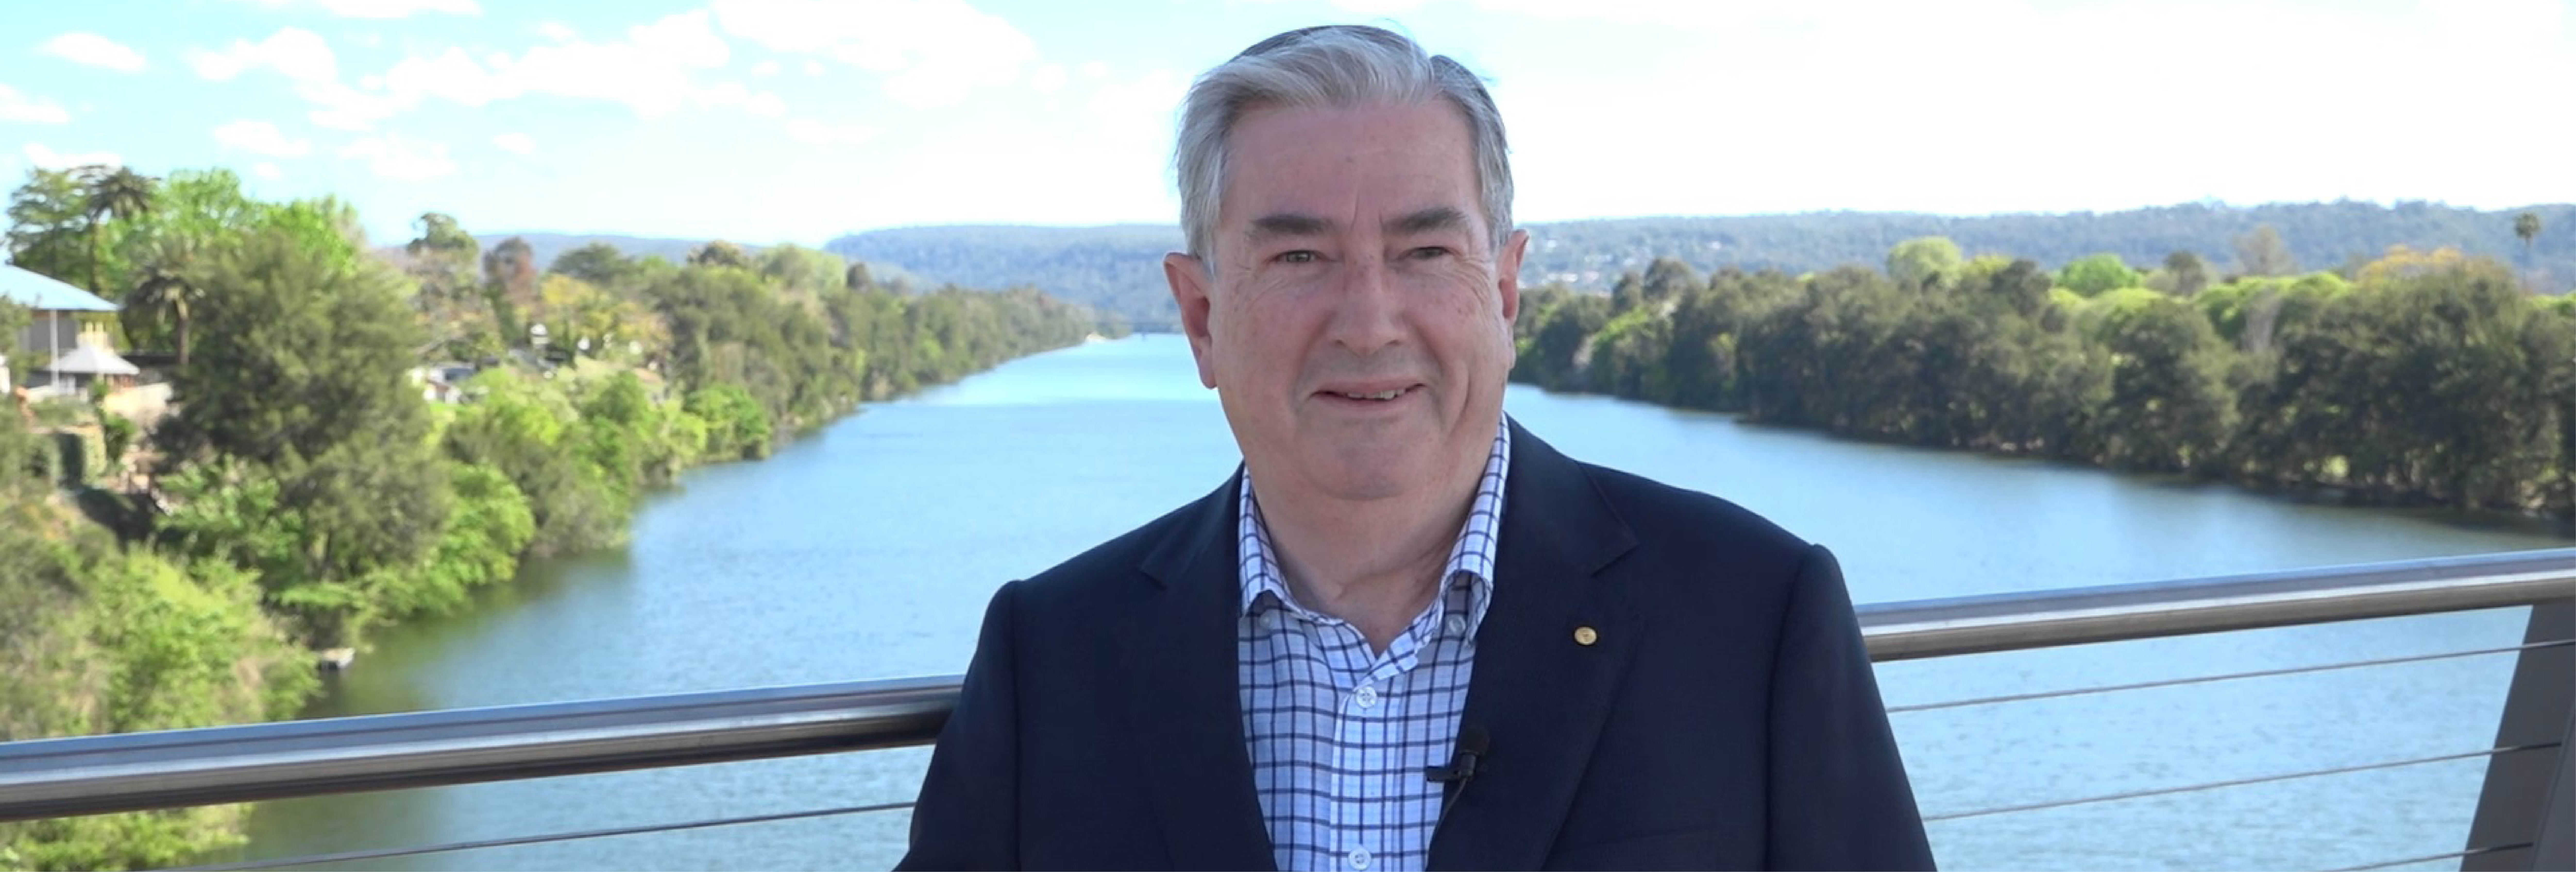 Penrith Mayor Ross Fowler OAM standing in front of the Nepean River